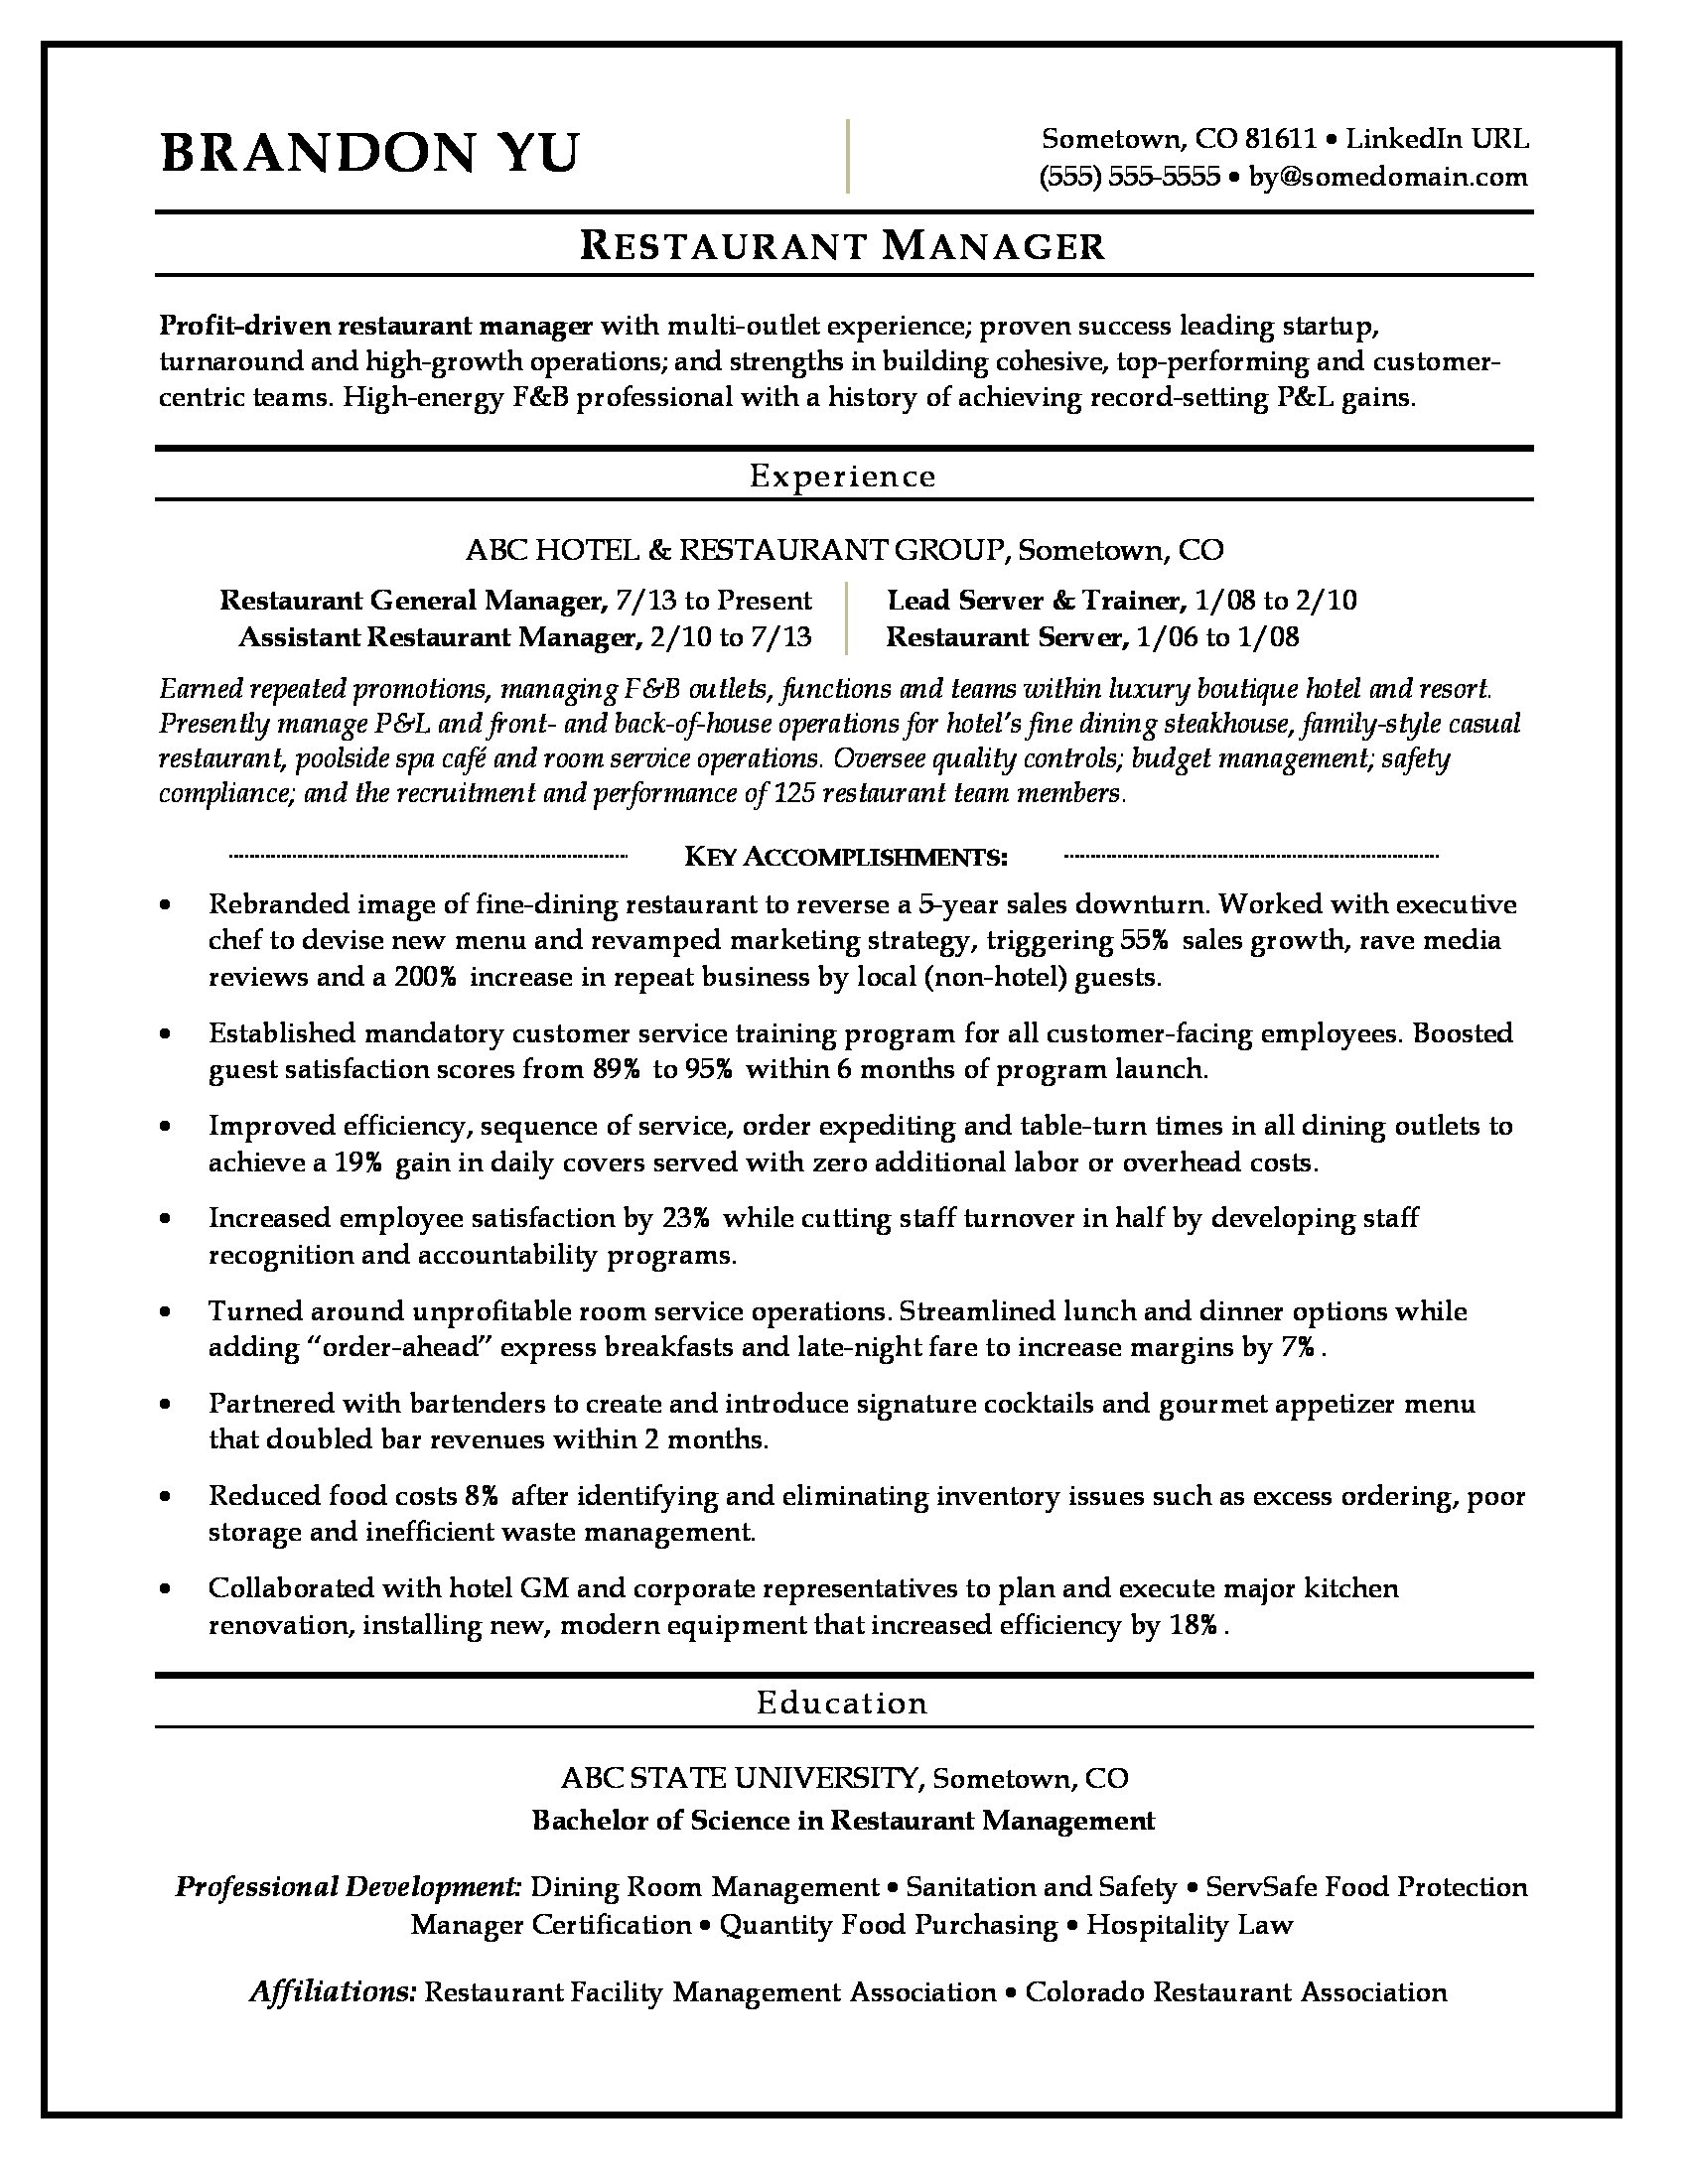 How To Make A Resume Template | Restaurant Manager Resume Sample Monster Com